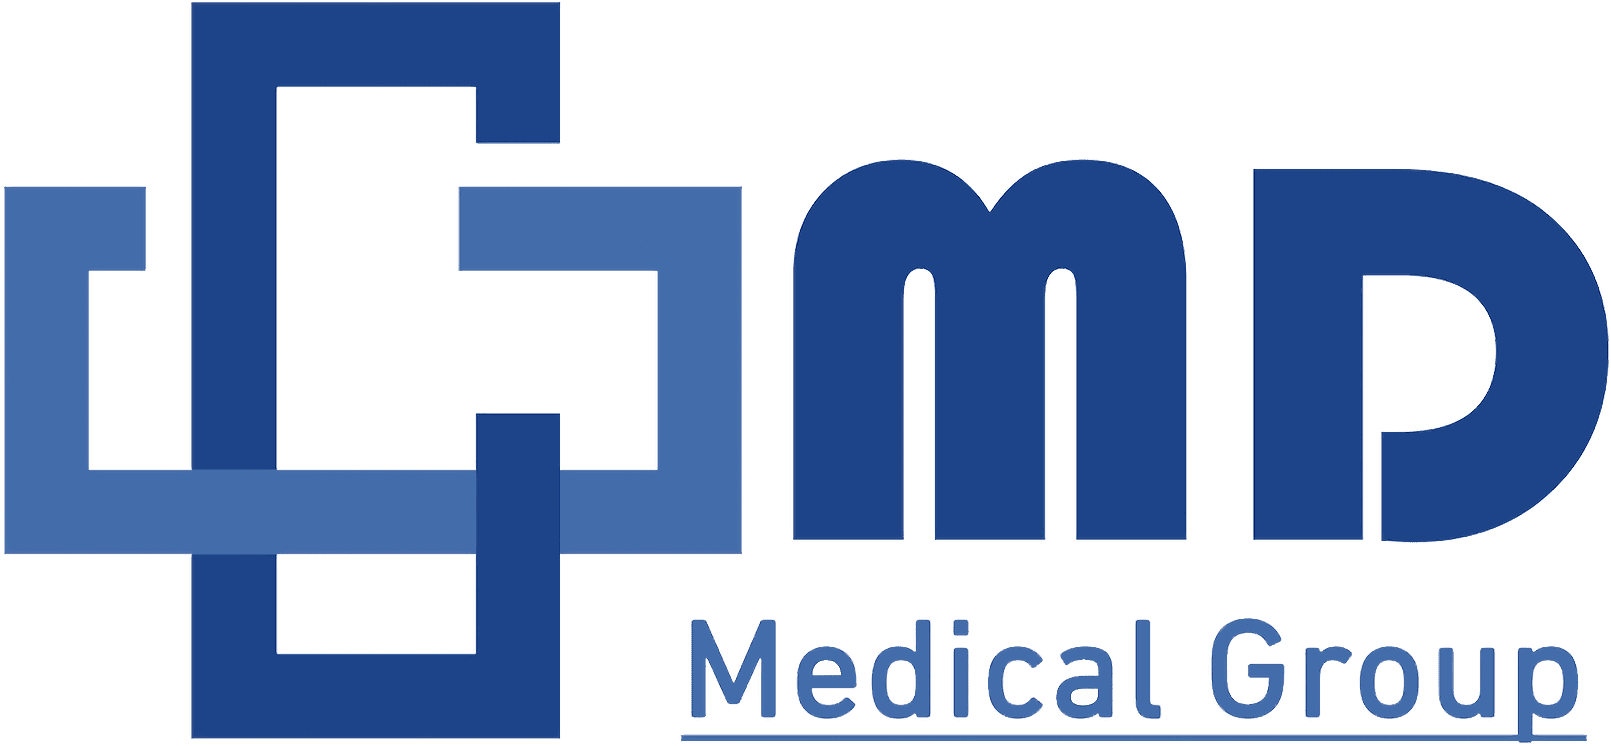 MD Family Clinic - Bruton